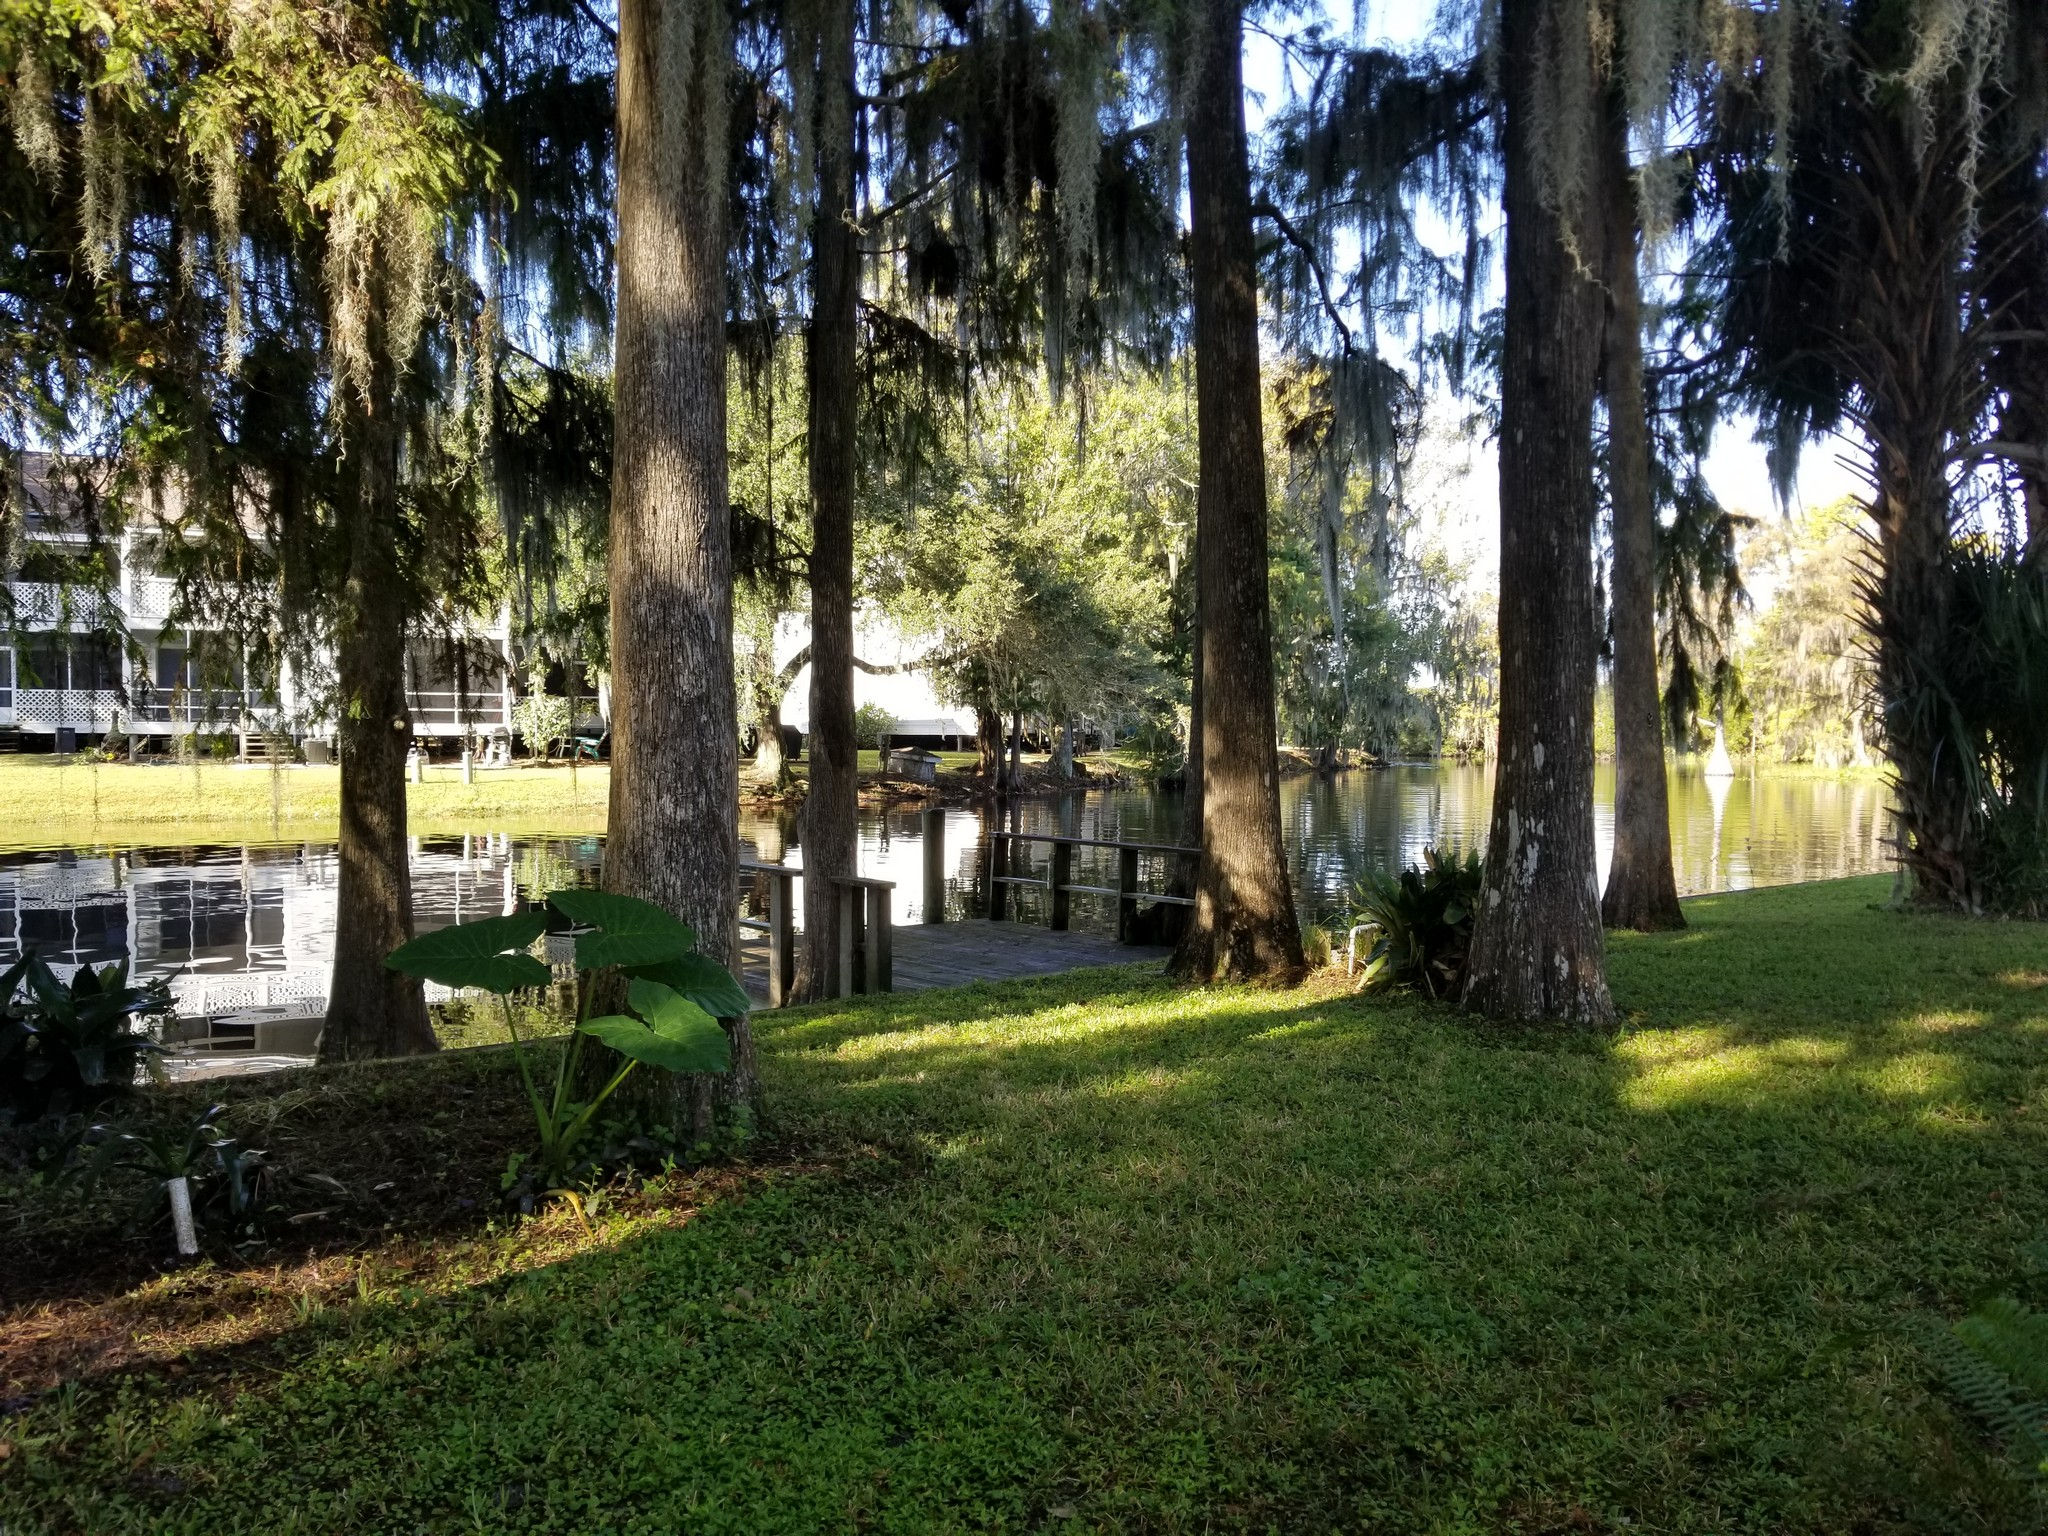 Photo of side yard with a small dock on the water and cypress trees in yard